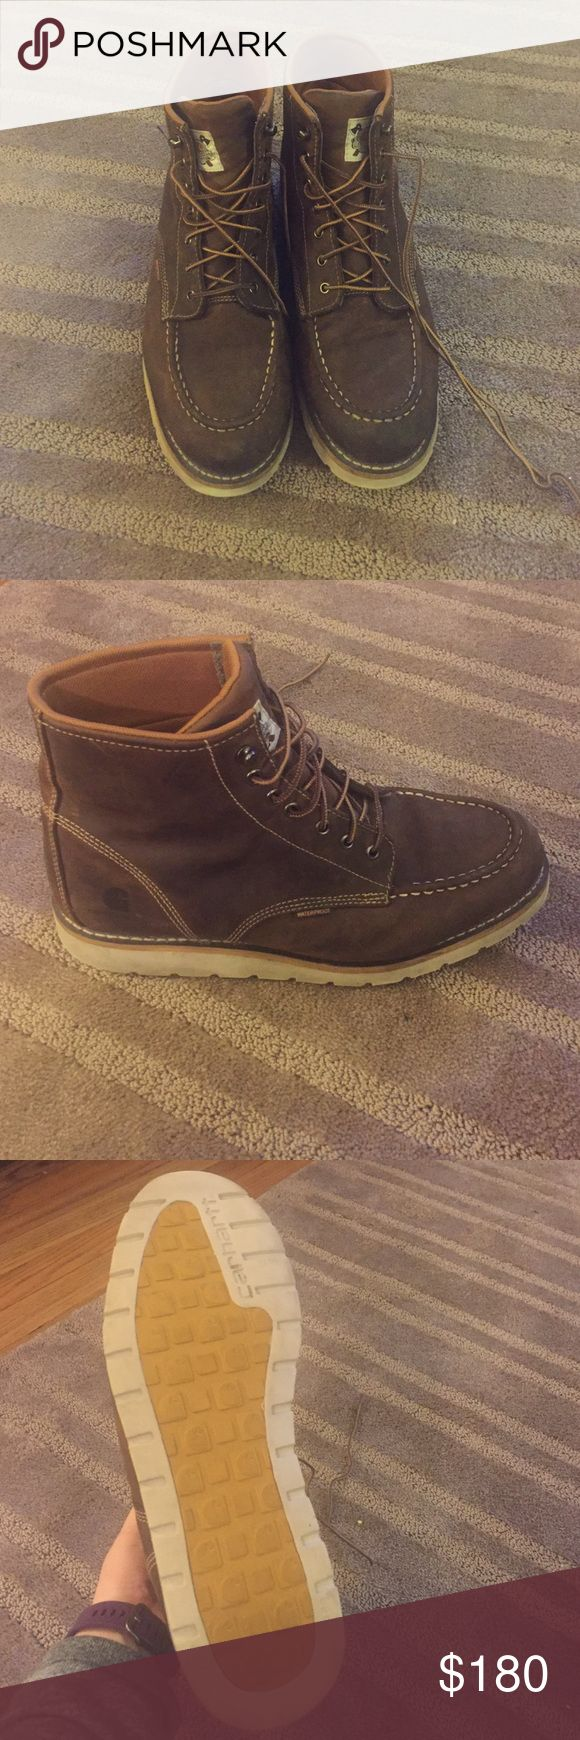 Carthartt men's boots Worn a handful of times-like new. Price is firm Carhartt Shoes Boots